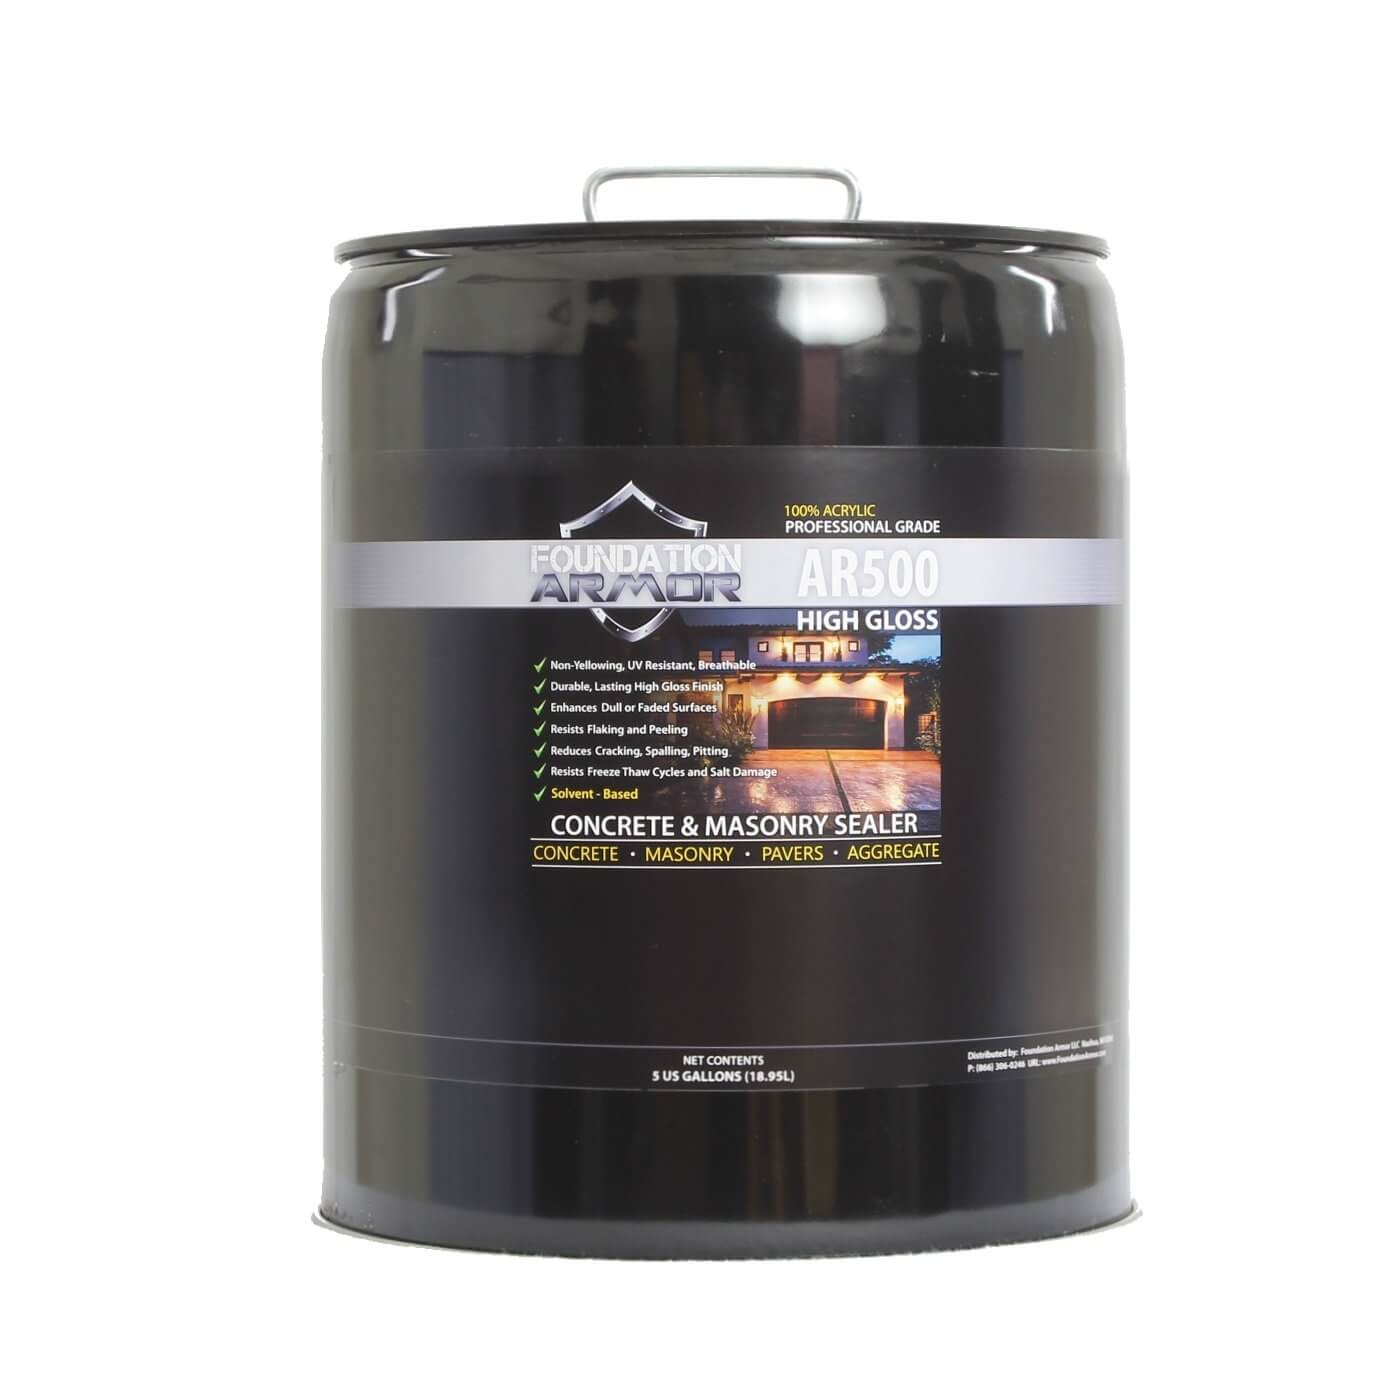 5-GAL Armor AR500 High Gloss Solvent Based Acrylic Concrete Sealer and Paver Sealer review